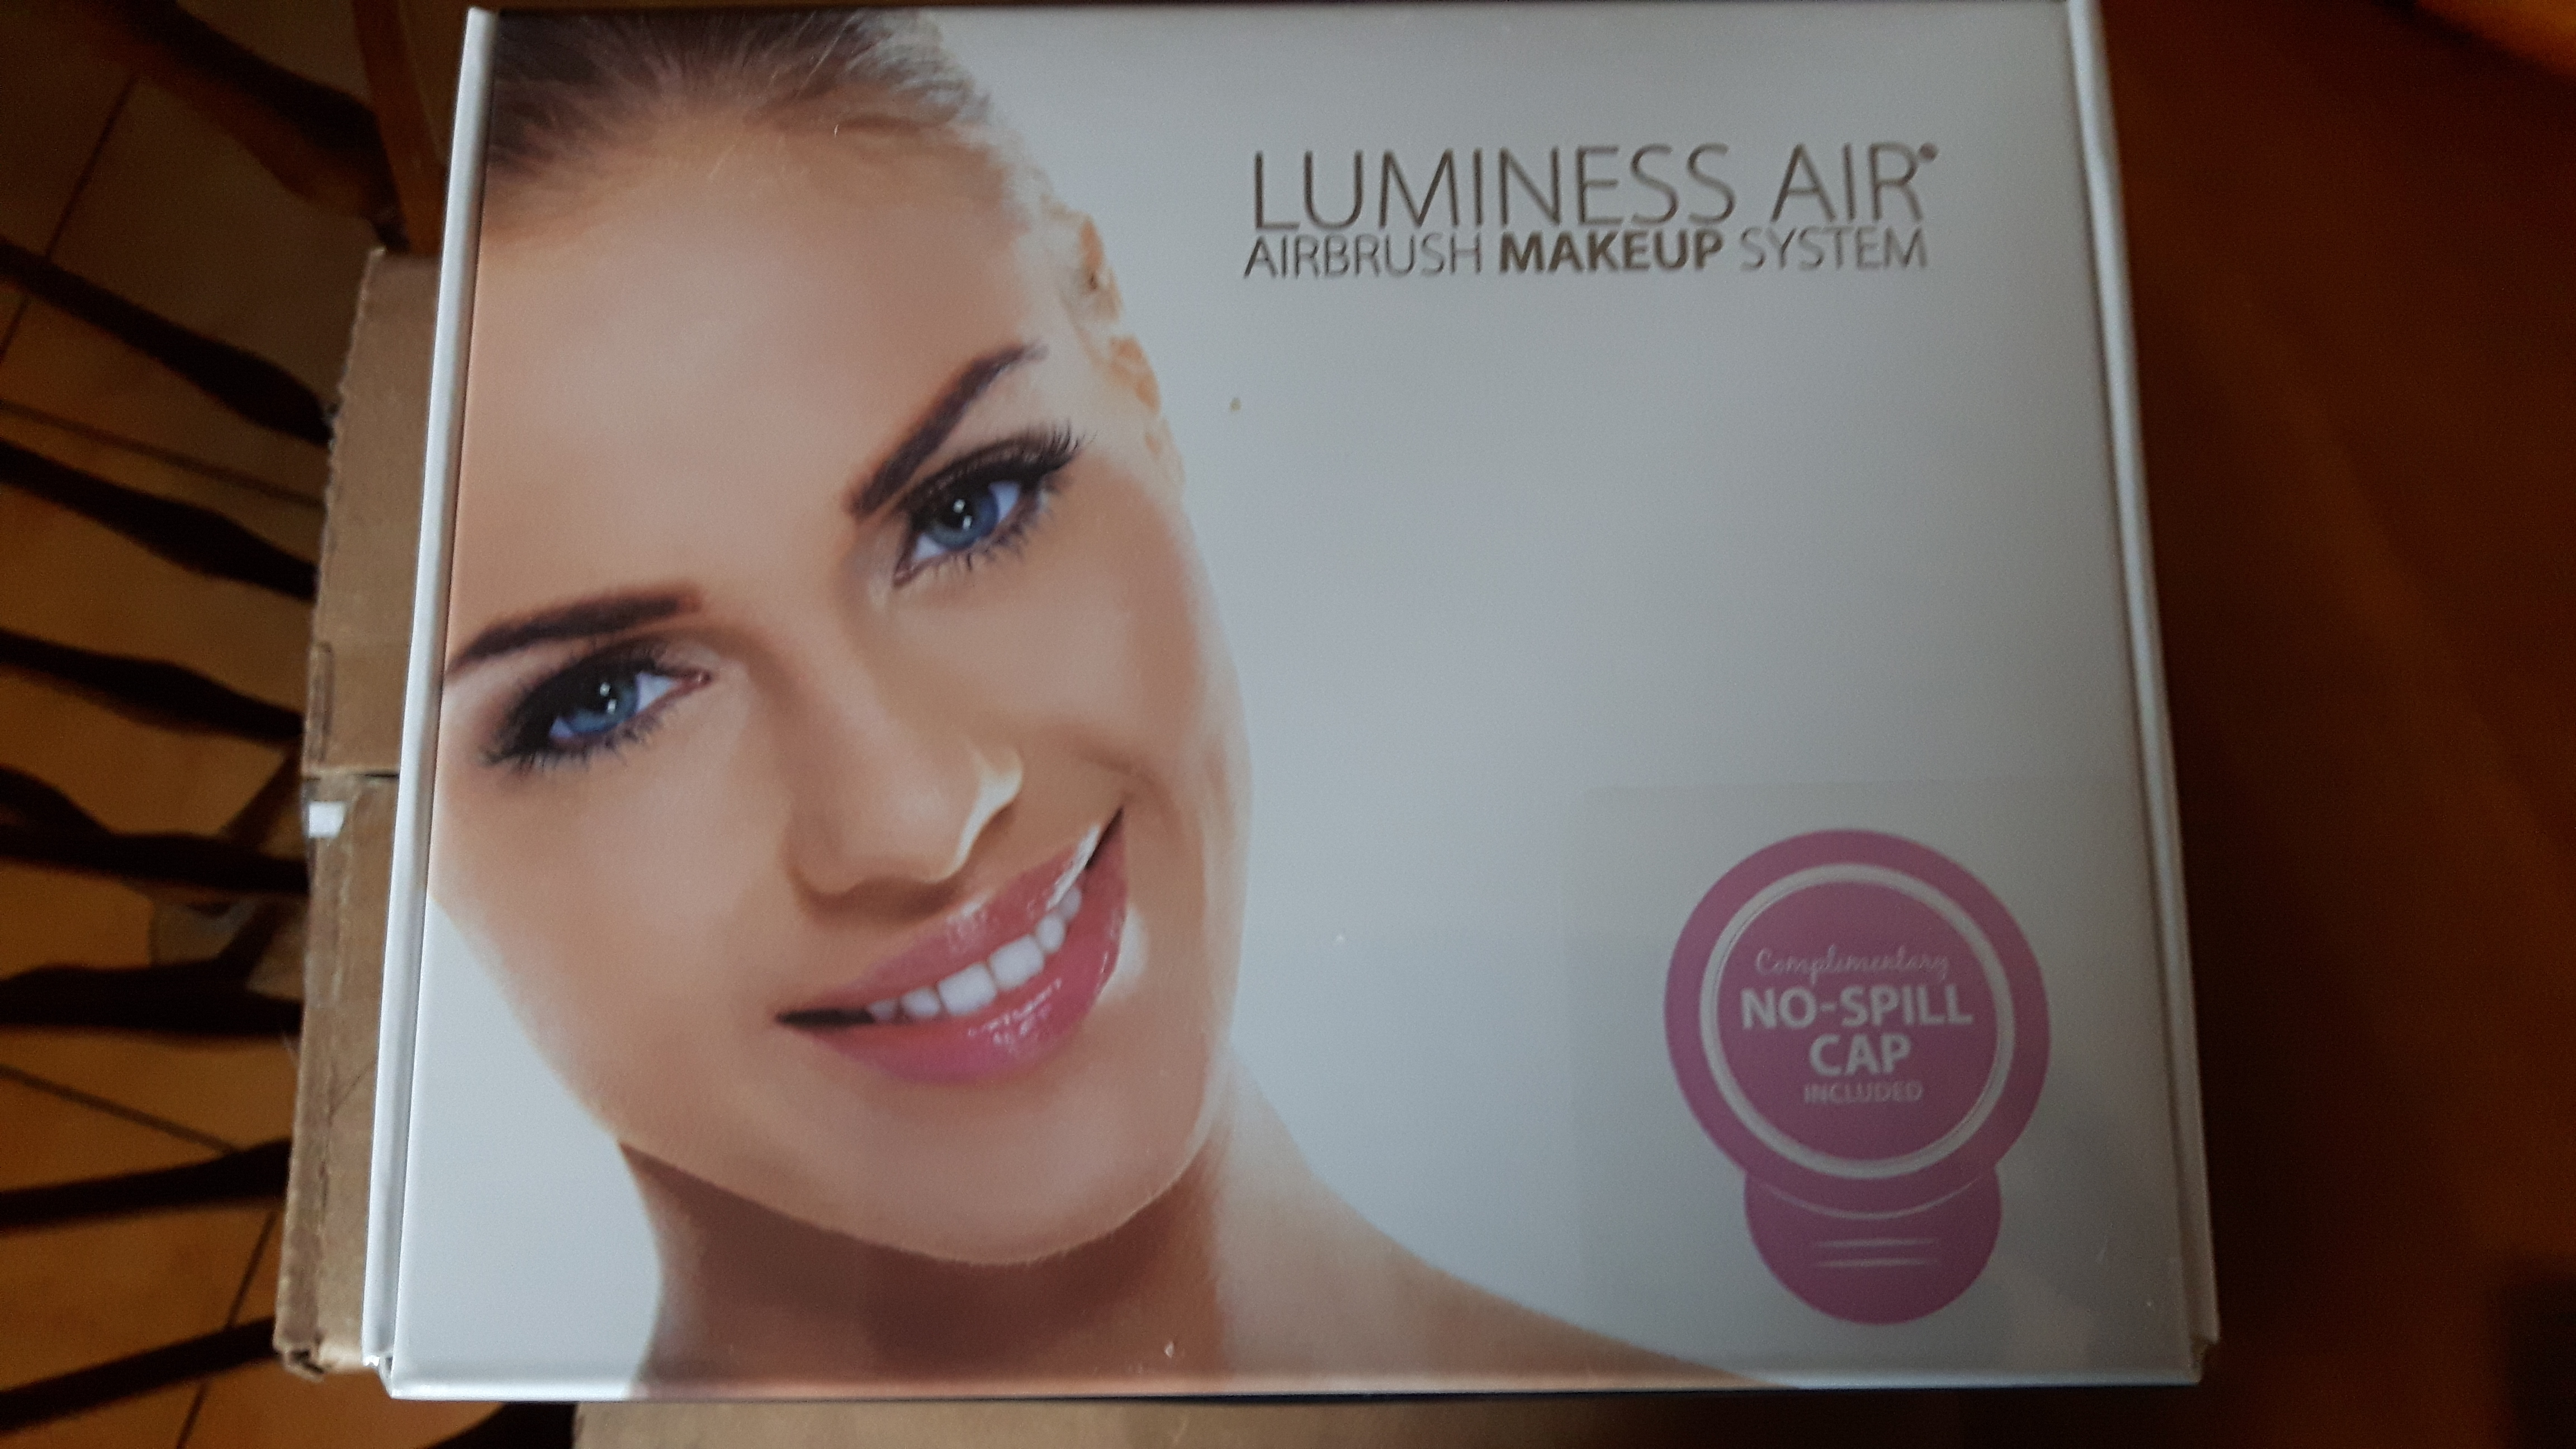 Luminess makeup legend airbrush system